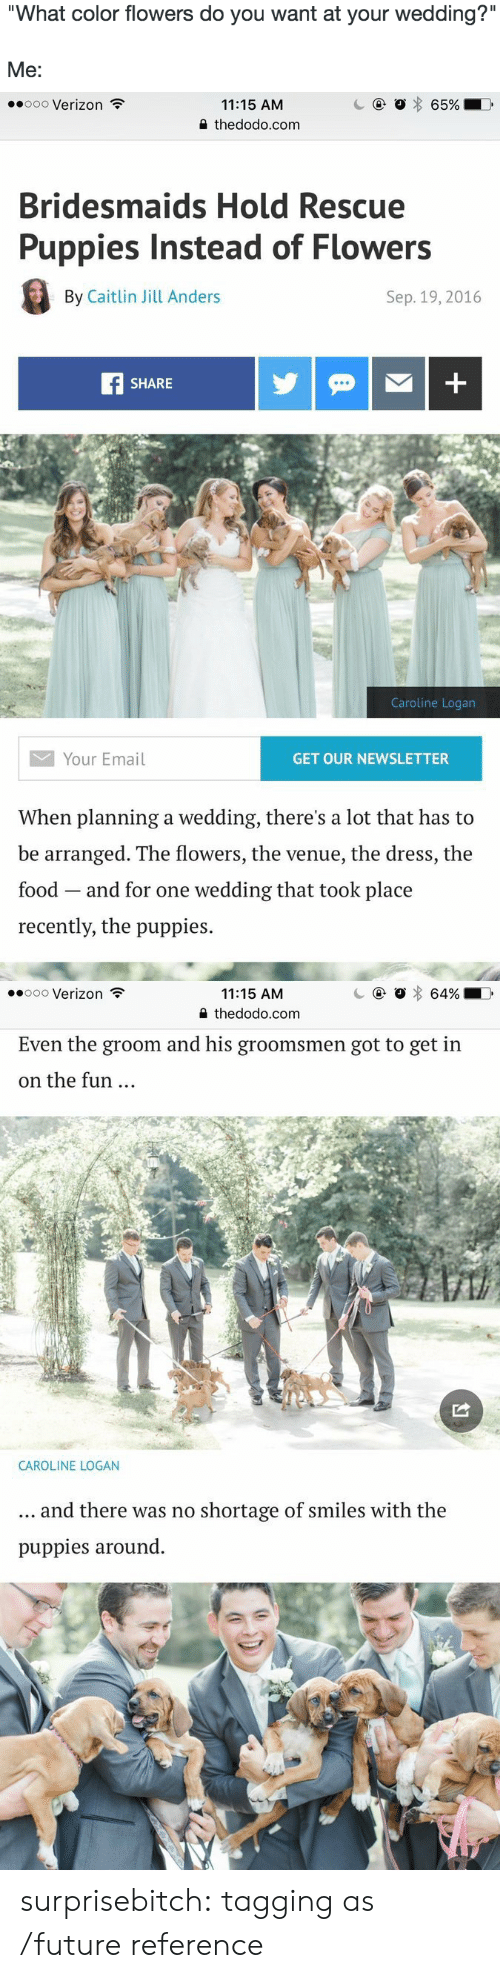 "Groomsmen: What color flowers do you want at your wedding?'""  Me:   .0o00 Verizon  11:15 AM  2 thedodo.com  Bridesmaids Hold Rescue  Puppies Instead of Flowers  By Caitlin Jill Anders  Sep. 19, 2016  SHARE  Caroline Logan  Your Email  GET OUR NEWSLETTER  When planning a wedding, there's a lot that has to  be arranged. The flowers, the venue, the dress, the  food and for one wedding that took place  recently, the puppies.   11:15 AM  0 thedodo.com  .ooo Verizon  Even the groom and his groomsmen got to get in  on the fun  CAROLINE LOGAN  and there was no shortage of smiles with the  puppies around. surprisebitch:  tagging as /future reference"